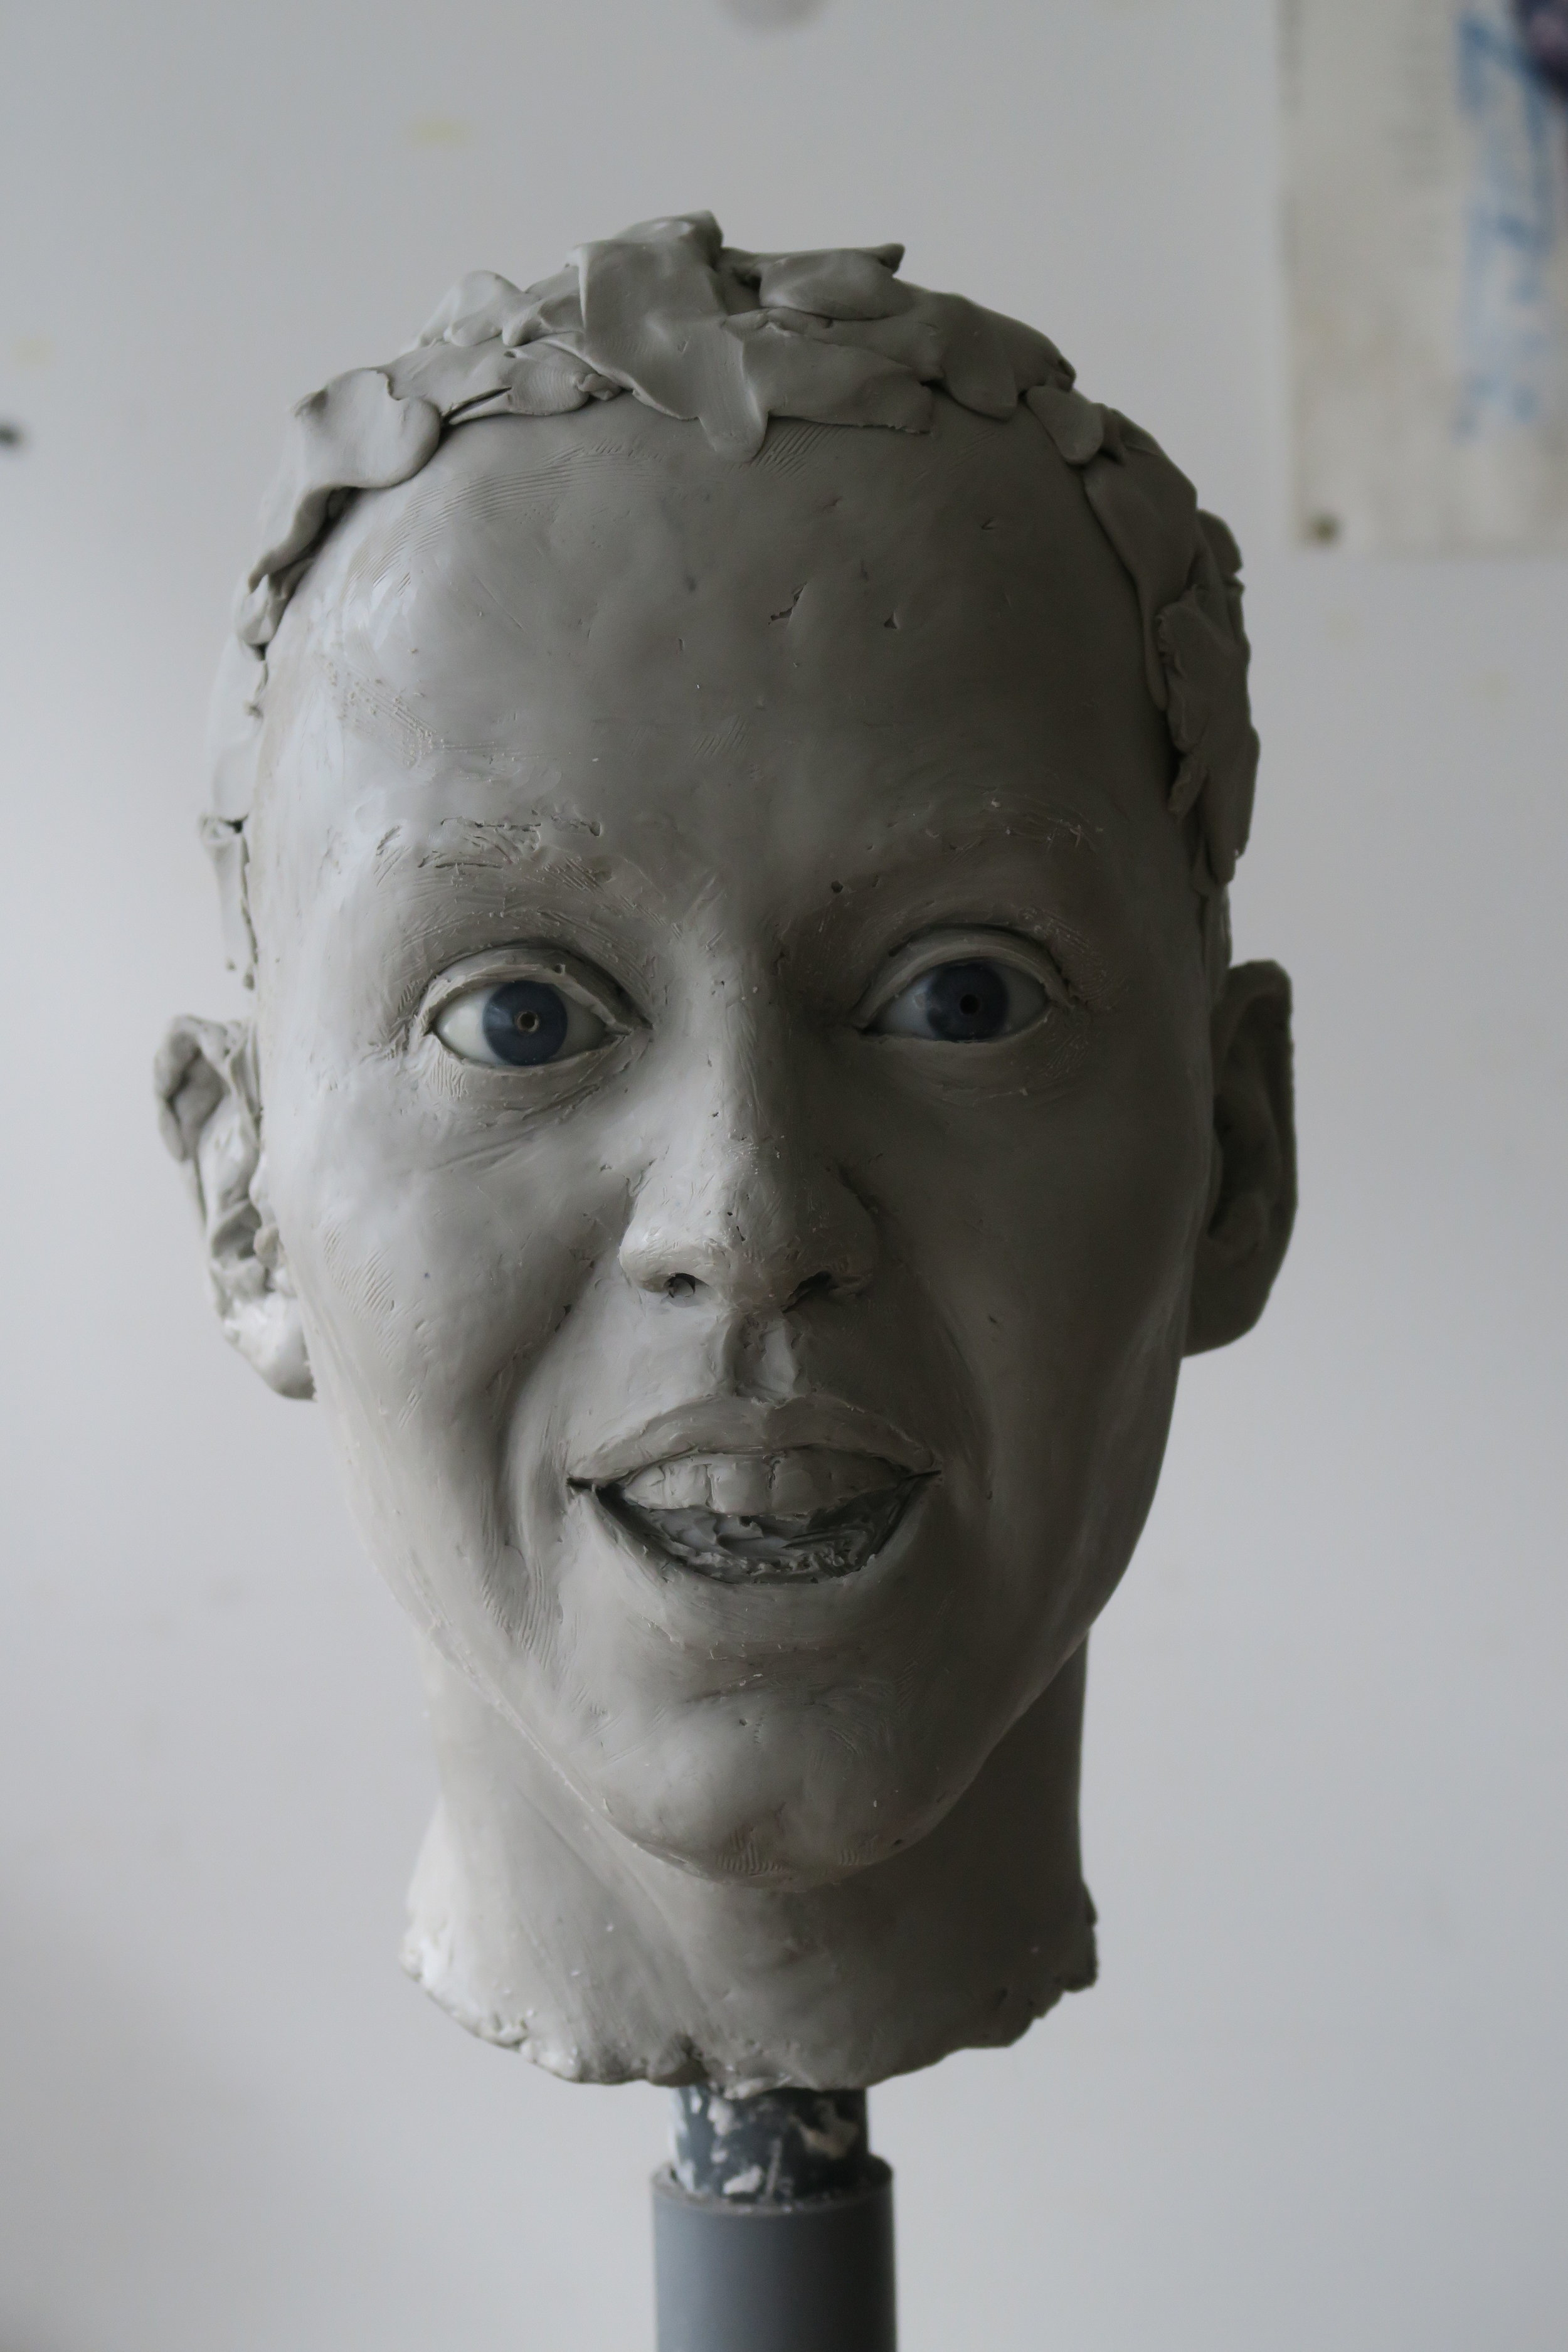 Katy Perry - Clay sculpture by Eric Saint Chaffray - Credit Musée Grévin